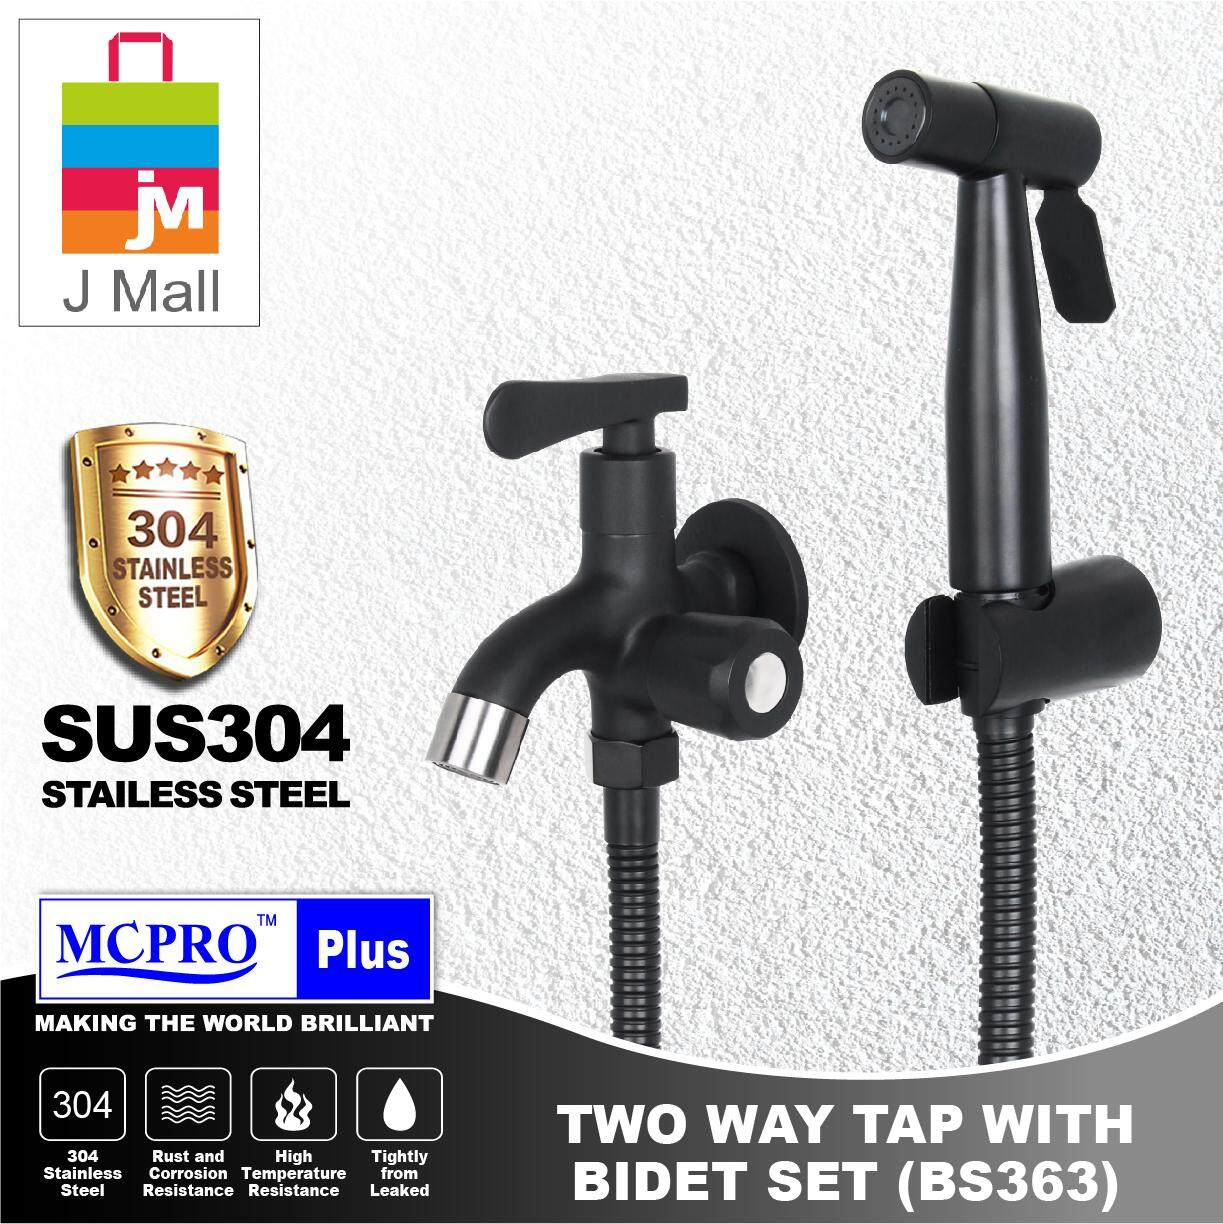 MCPRO PLUS Black Oxide Coated On Stainless Steel SUS304 Bathroom Faucet TWO WAY TAP with BIDET AND FLEXIBLE HOSE SET (BS363)